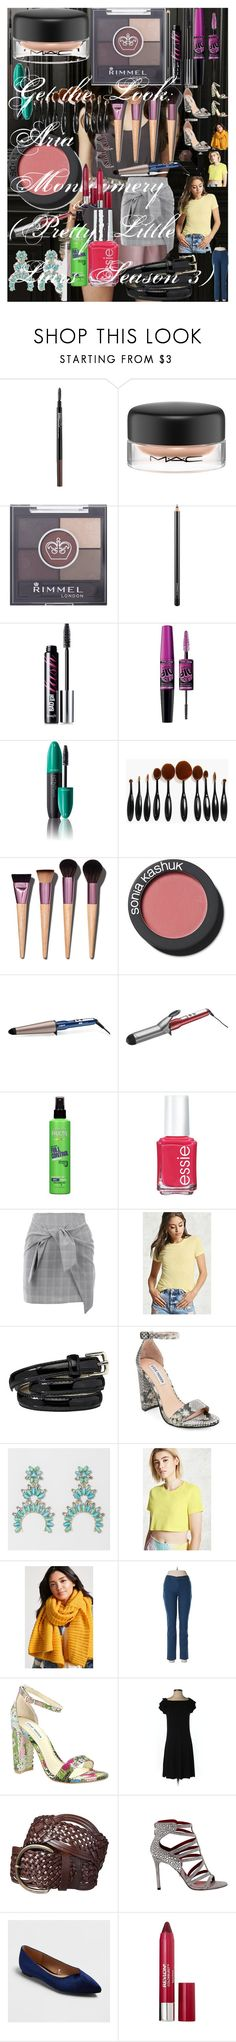 Get the Look: Aria Montgomery (Pretty Little Liars Season 3) by oroartye-1 on Polyvore featuring beauty, Sonia Kashuk, Revlon, Benefit, MAC Cosmetics, Maybelline, Rimmel, Conair, Boohoo and Essie